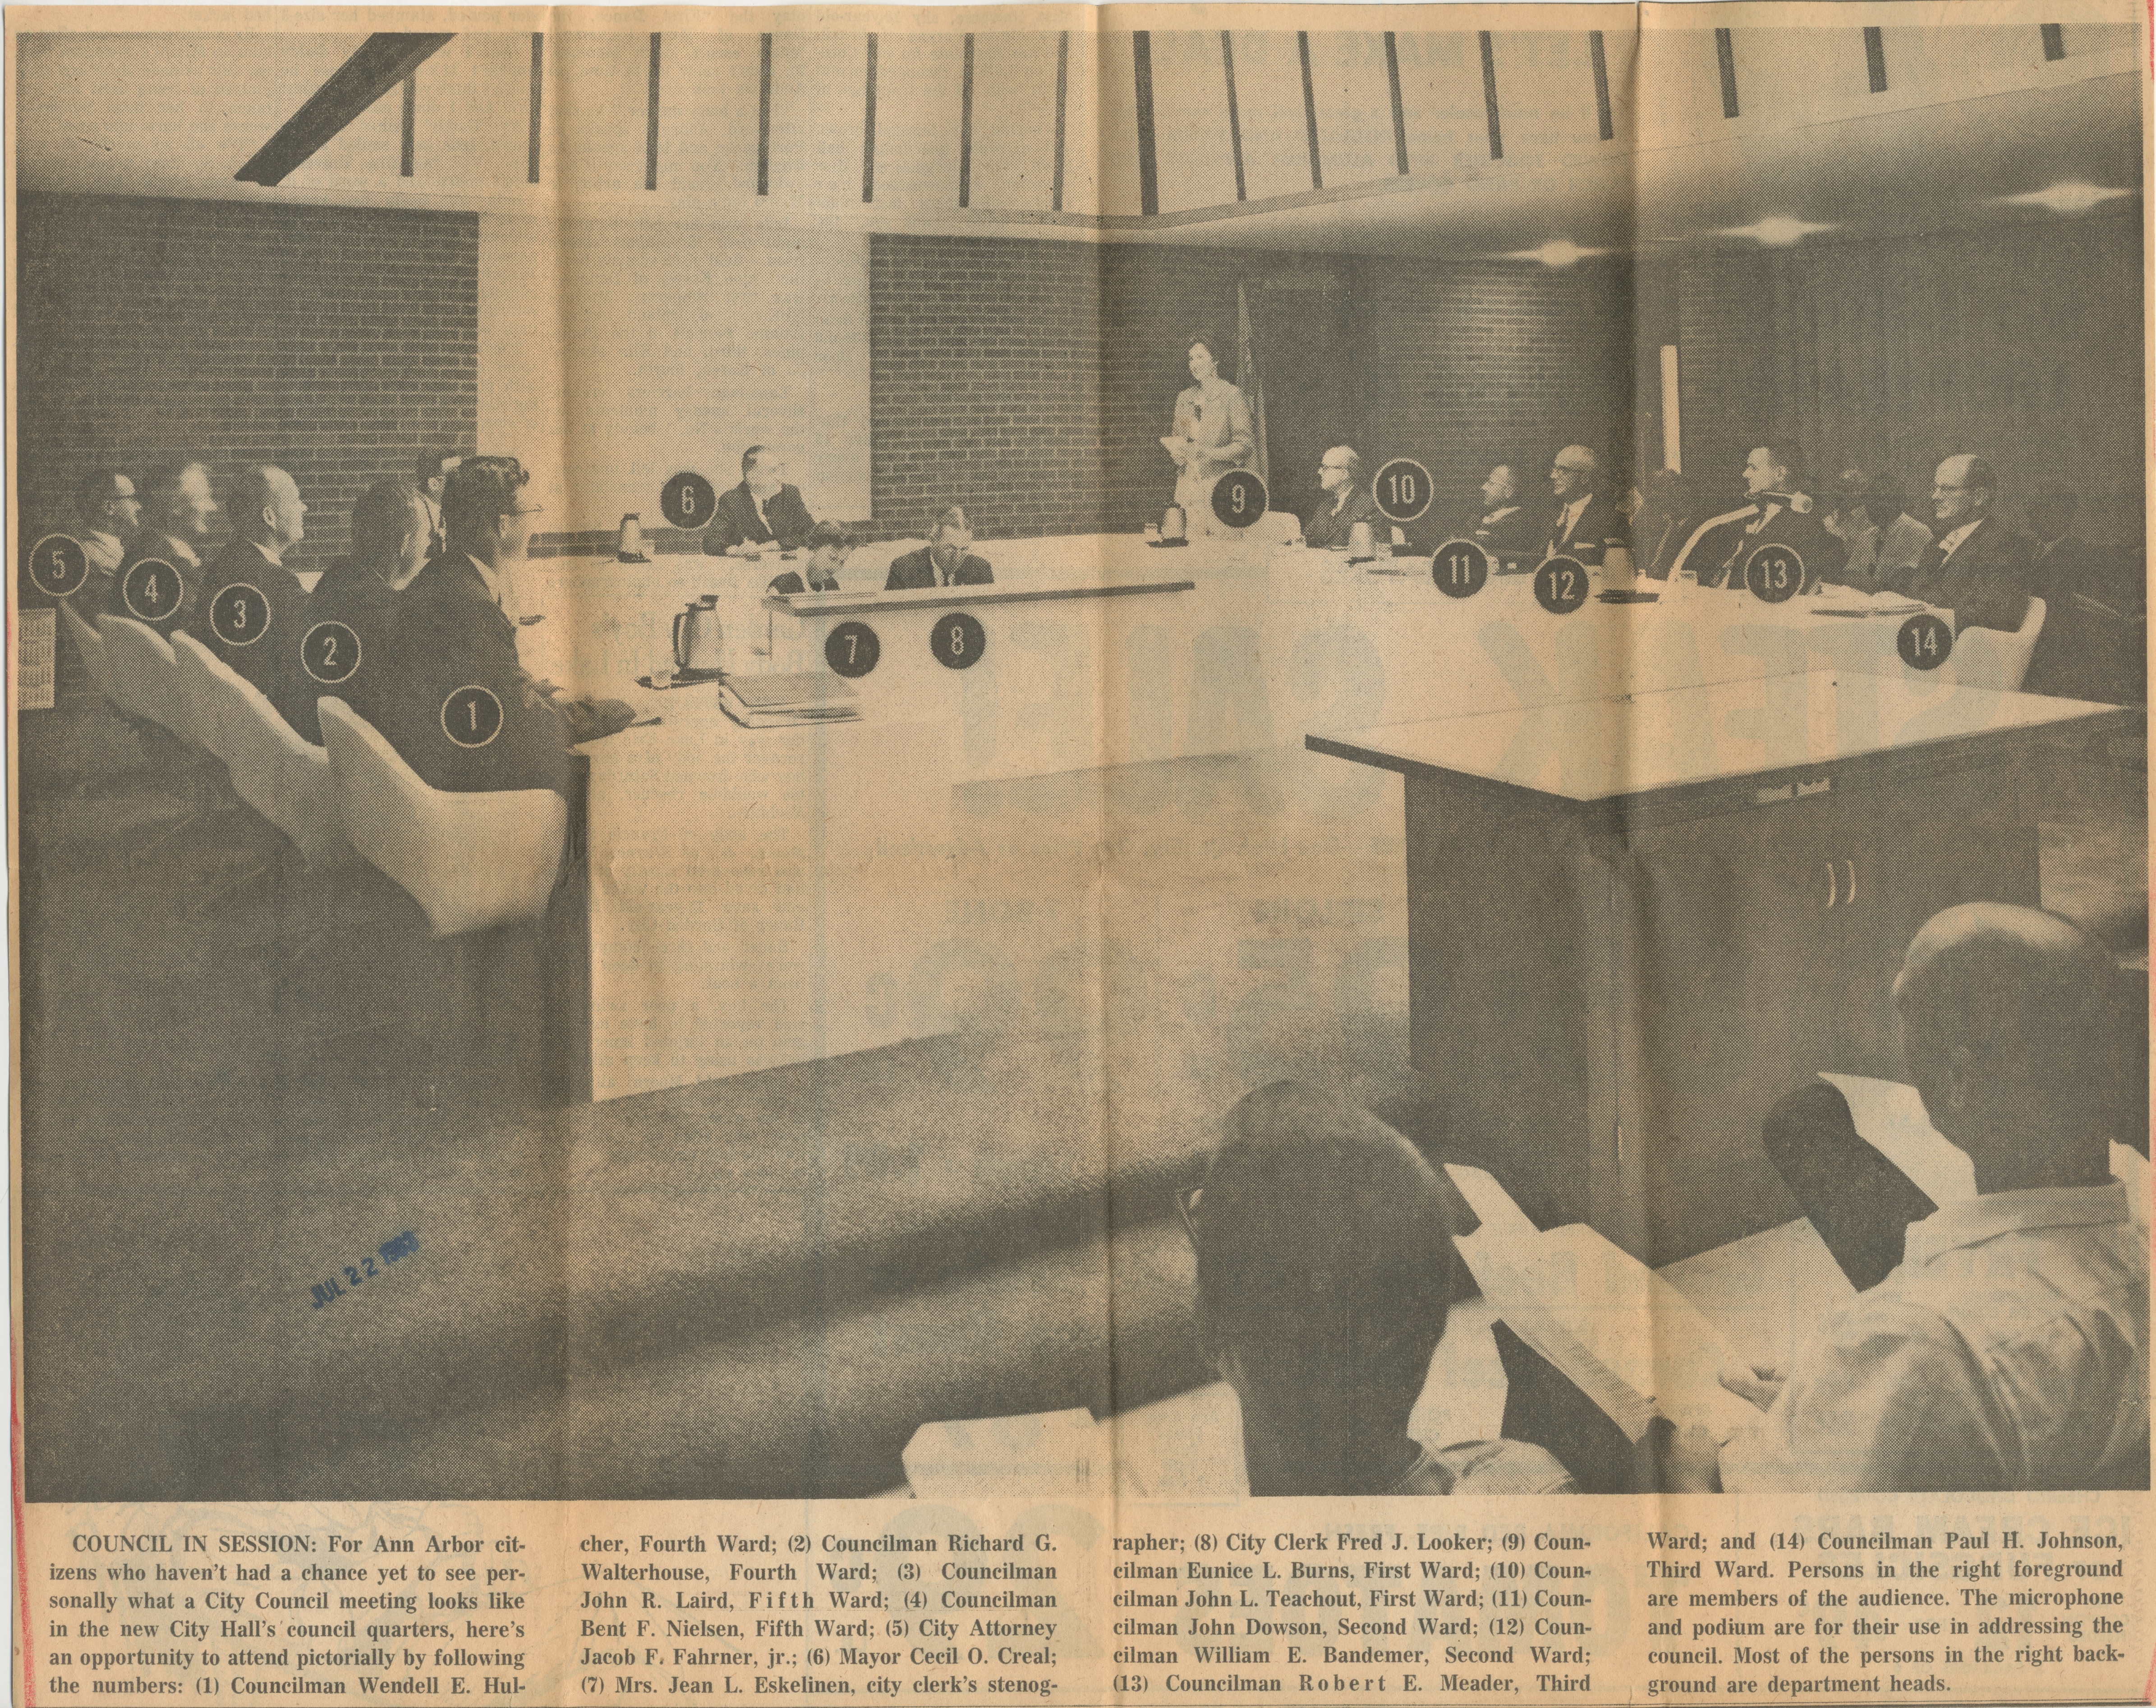 Council In Session image